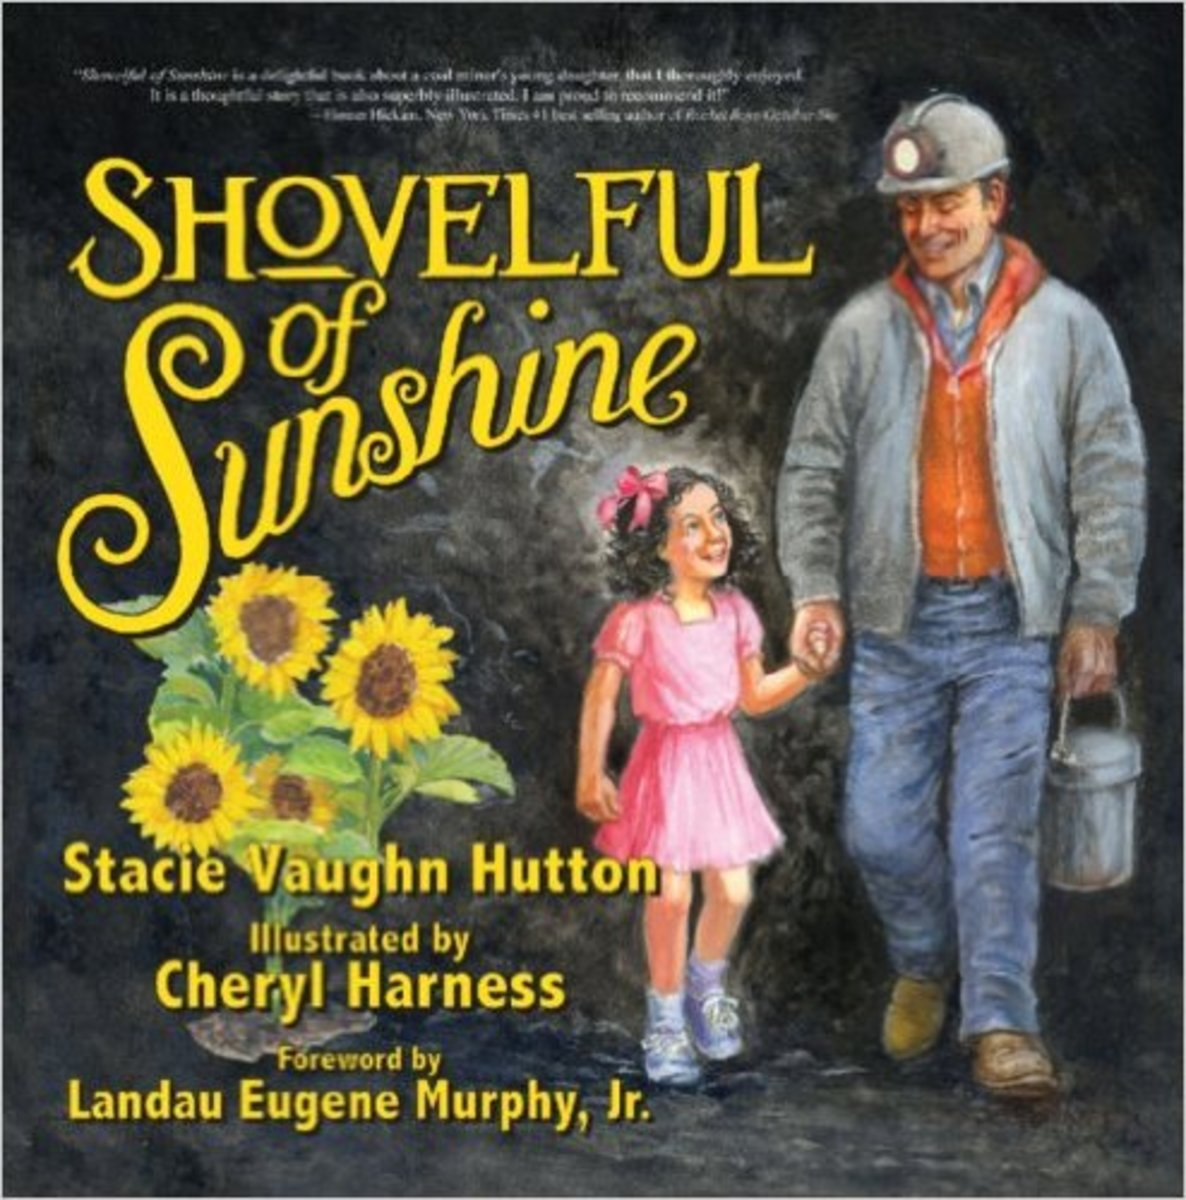 Shovelful of Sunshine (Mom's Choice Award Recipient) by Stacie Vaughn Hutton